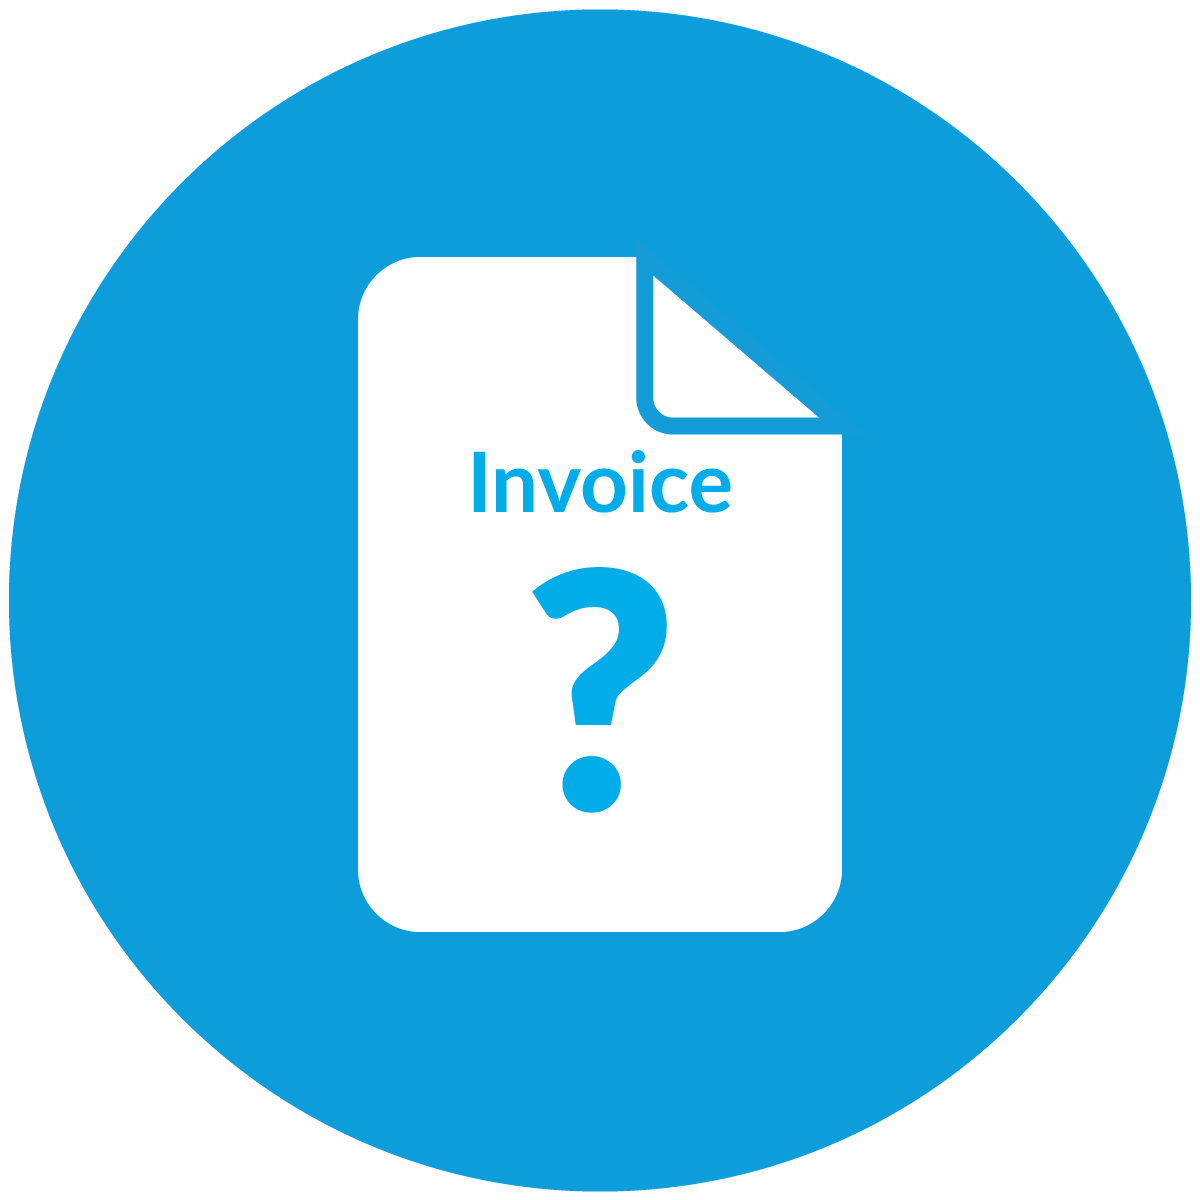 Check your invoice balance